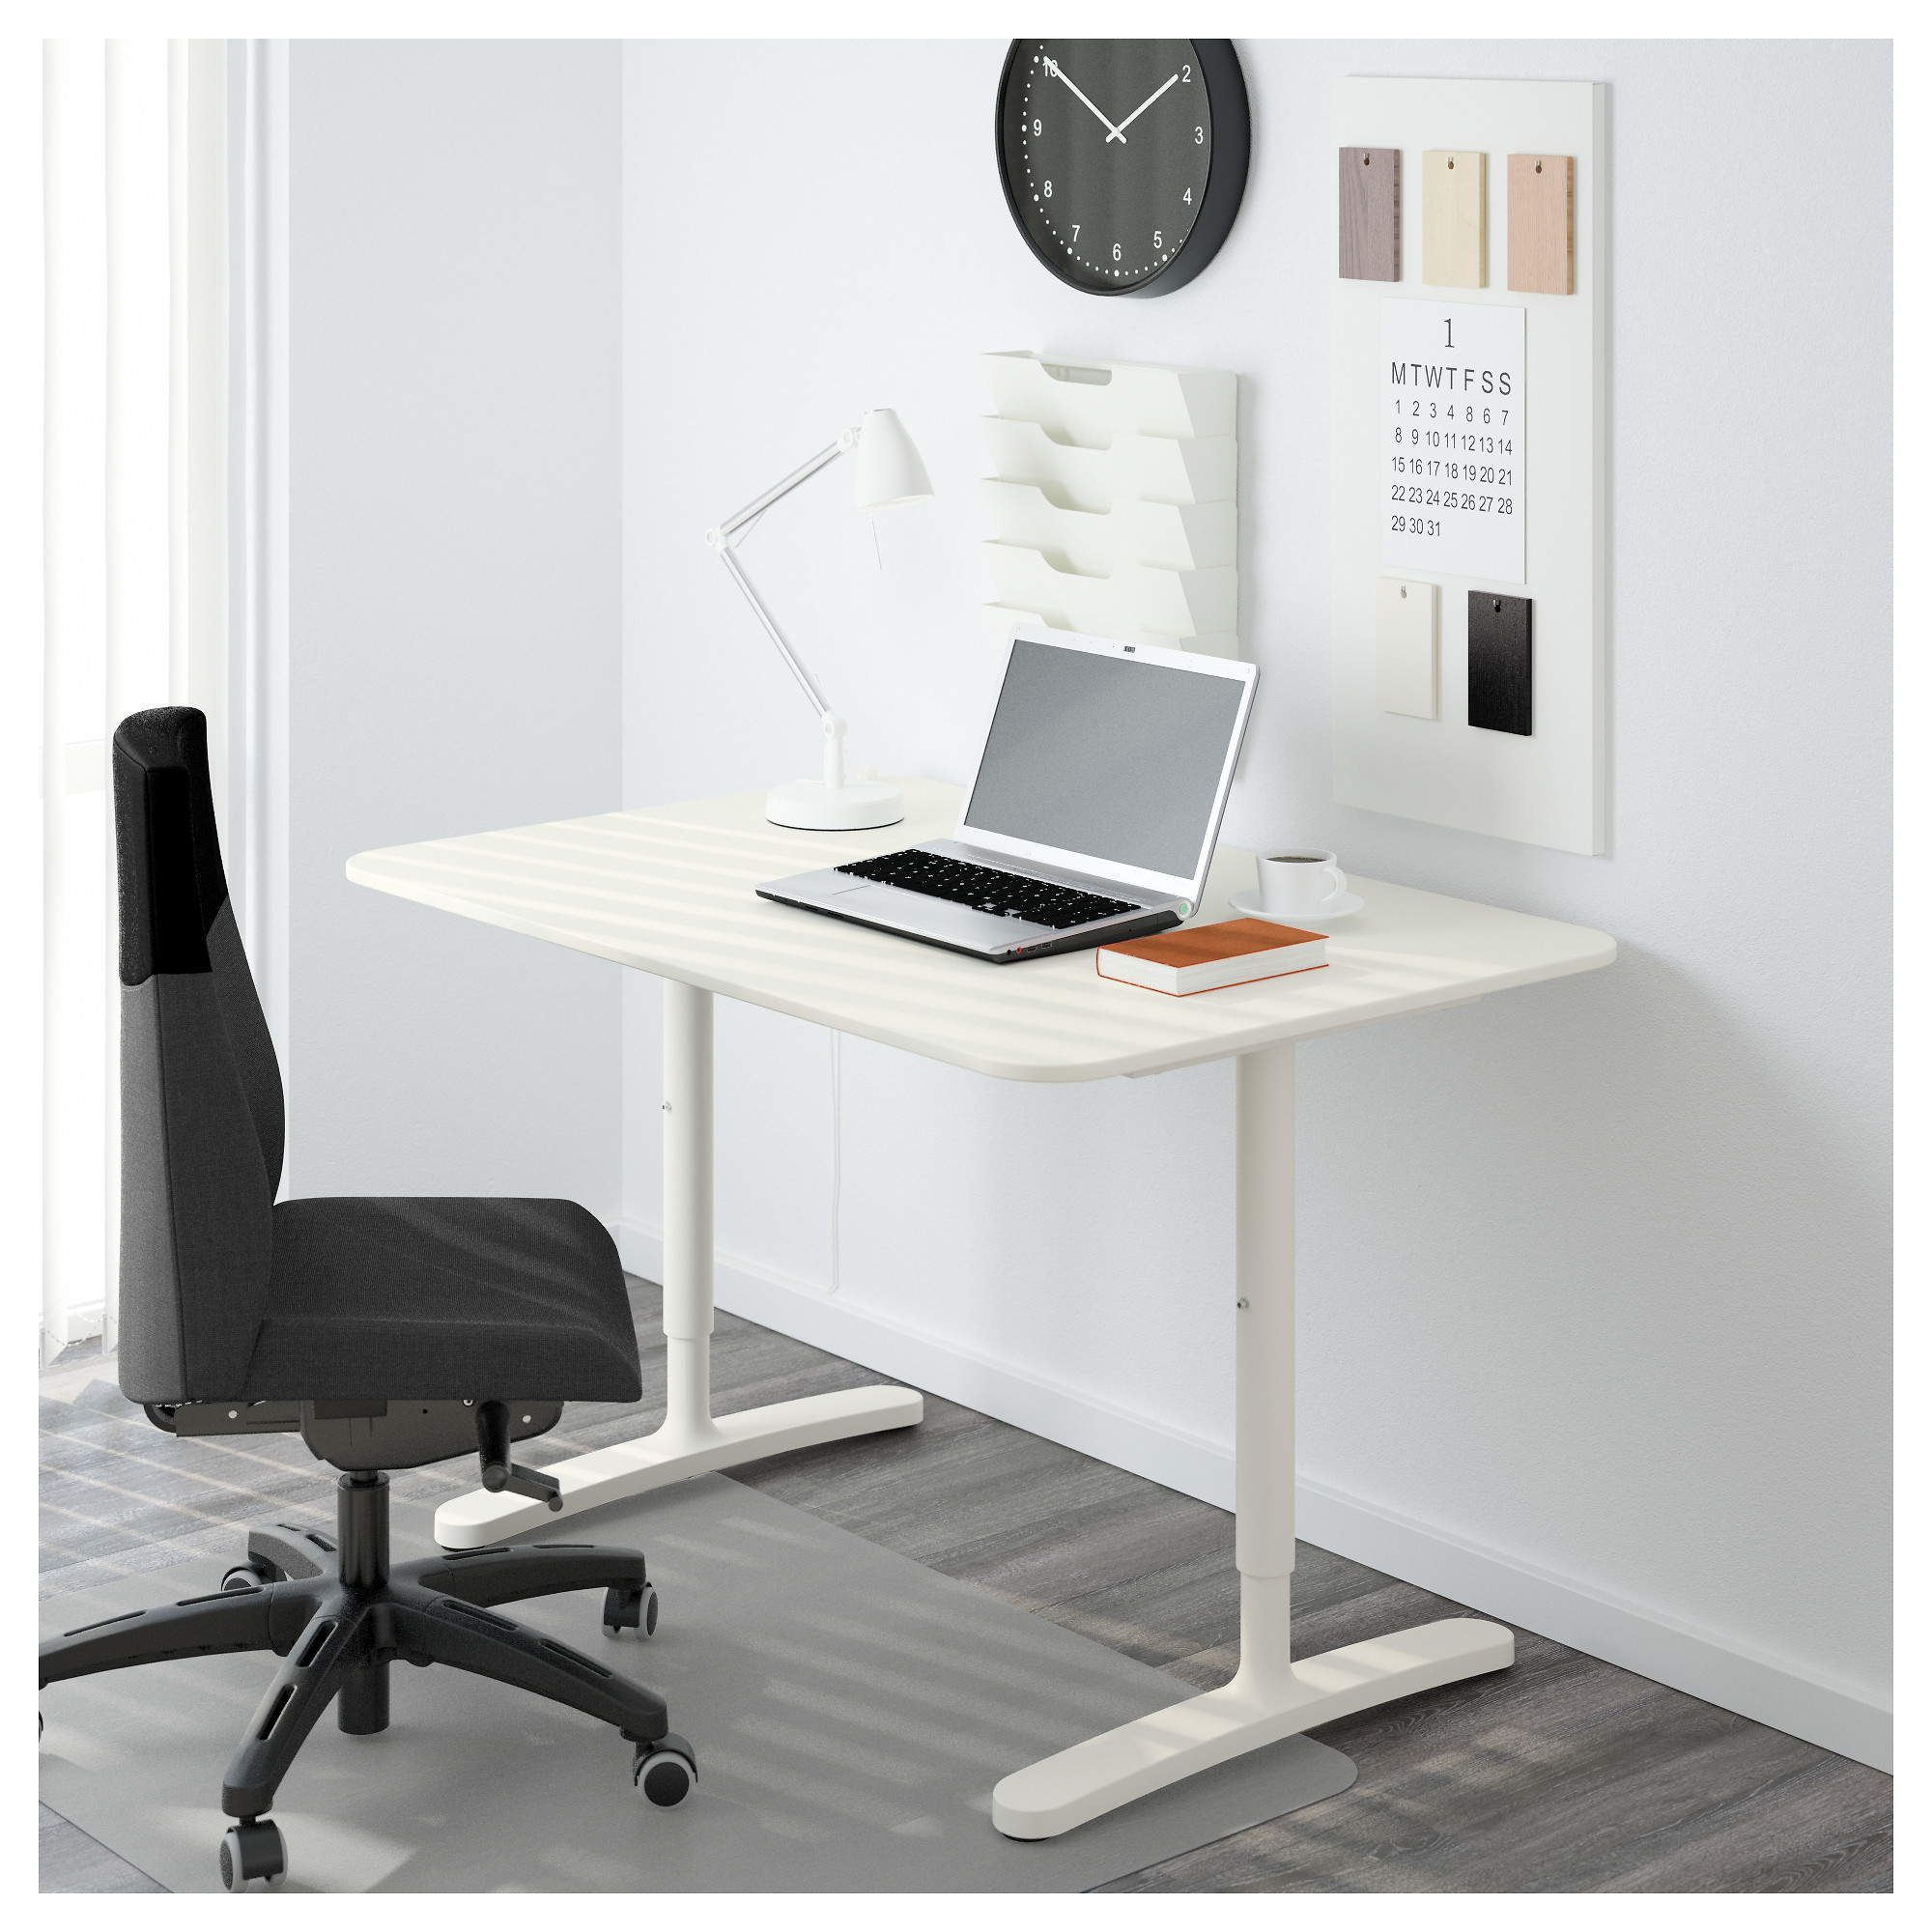 Ikea Office Furniture Marvellous Ikea Chairs Office Pictures Ideas